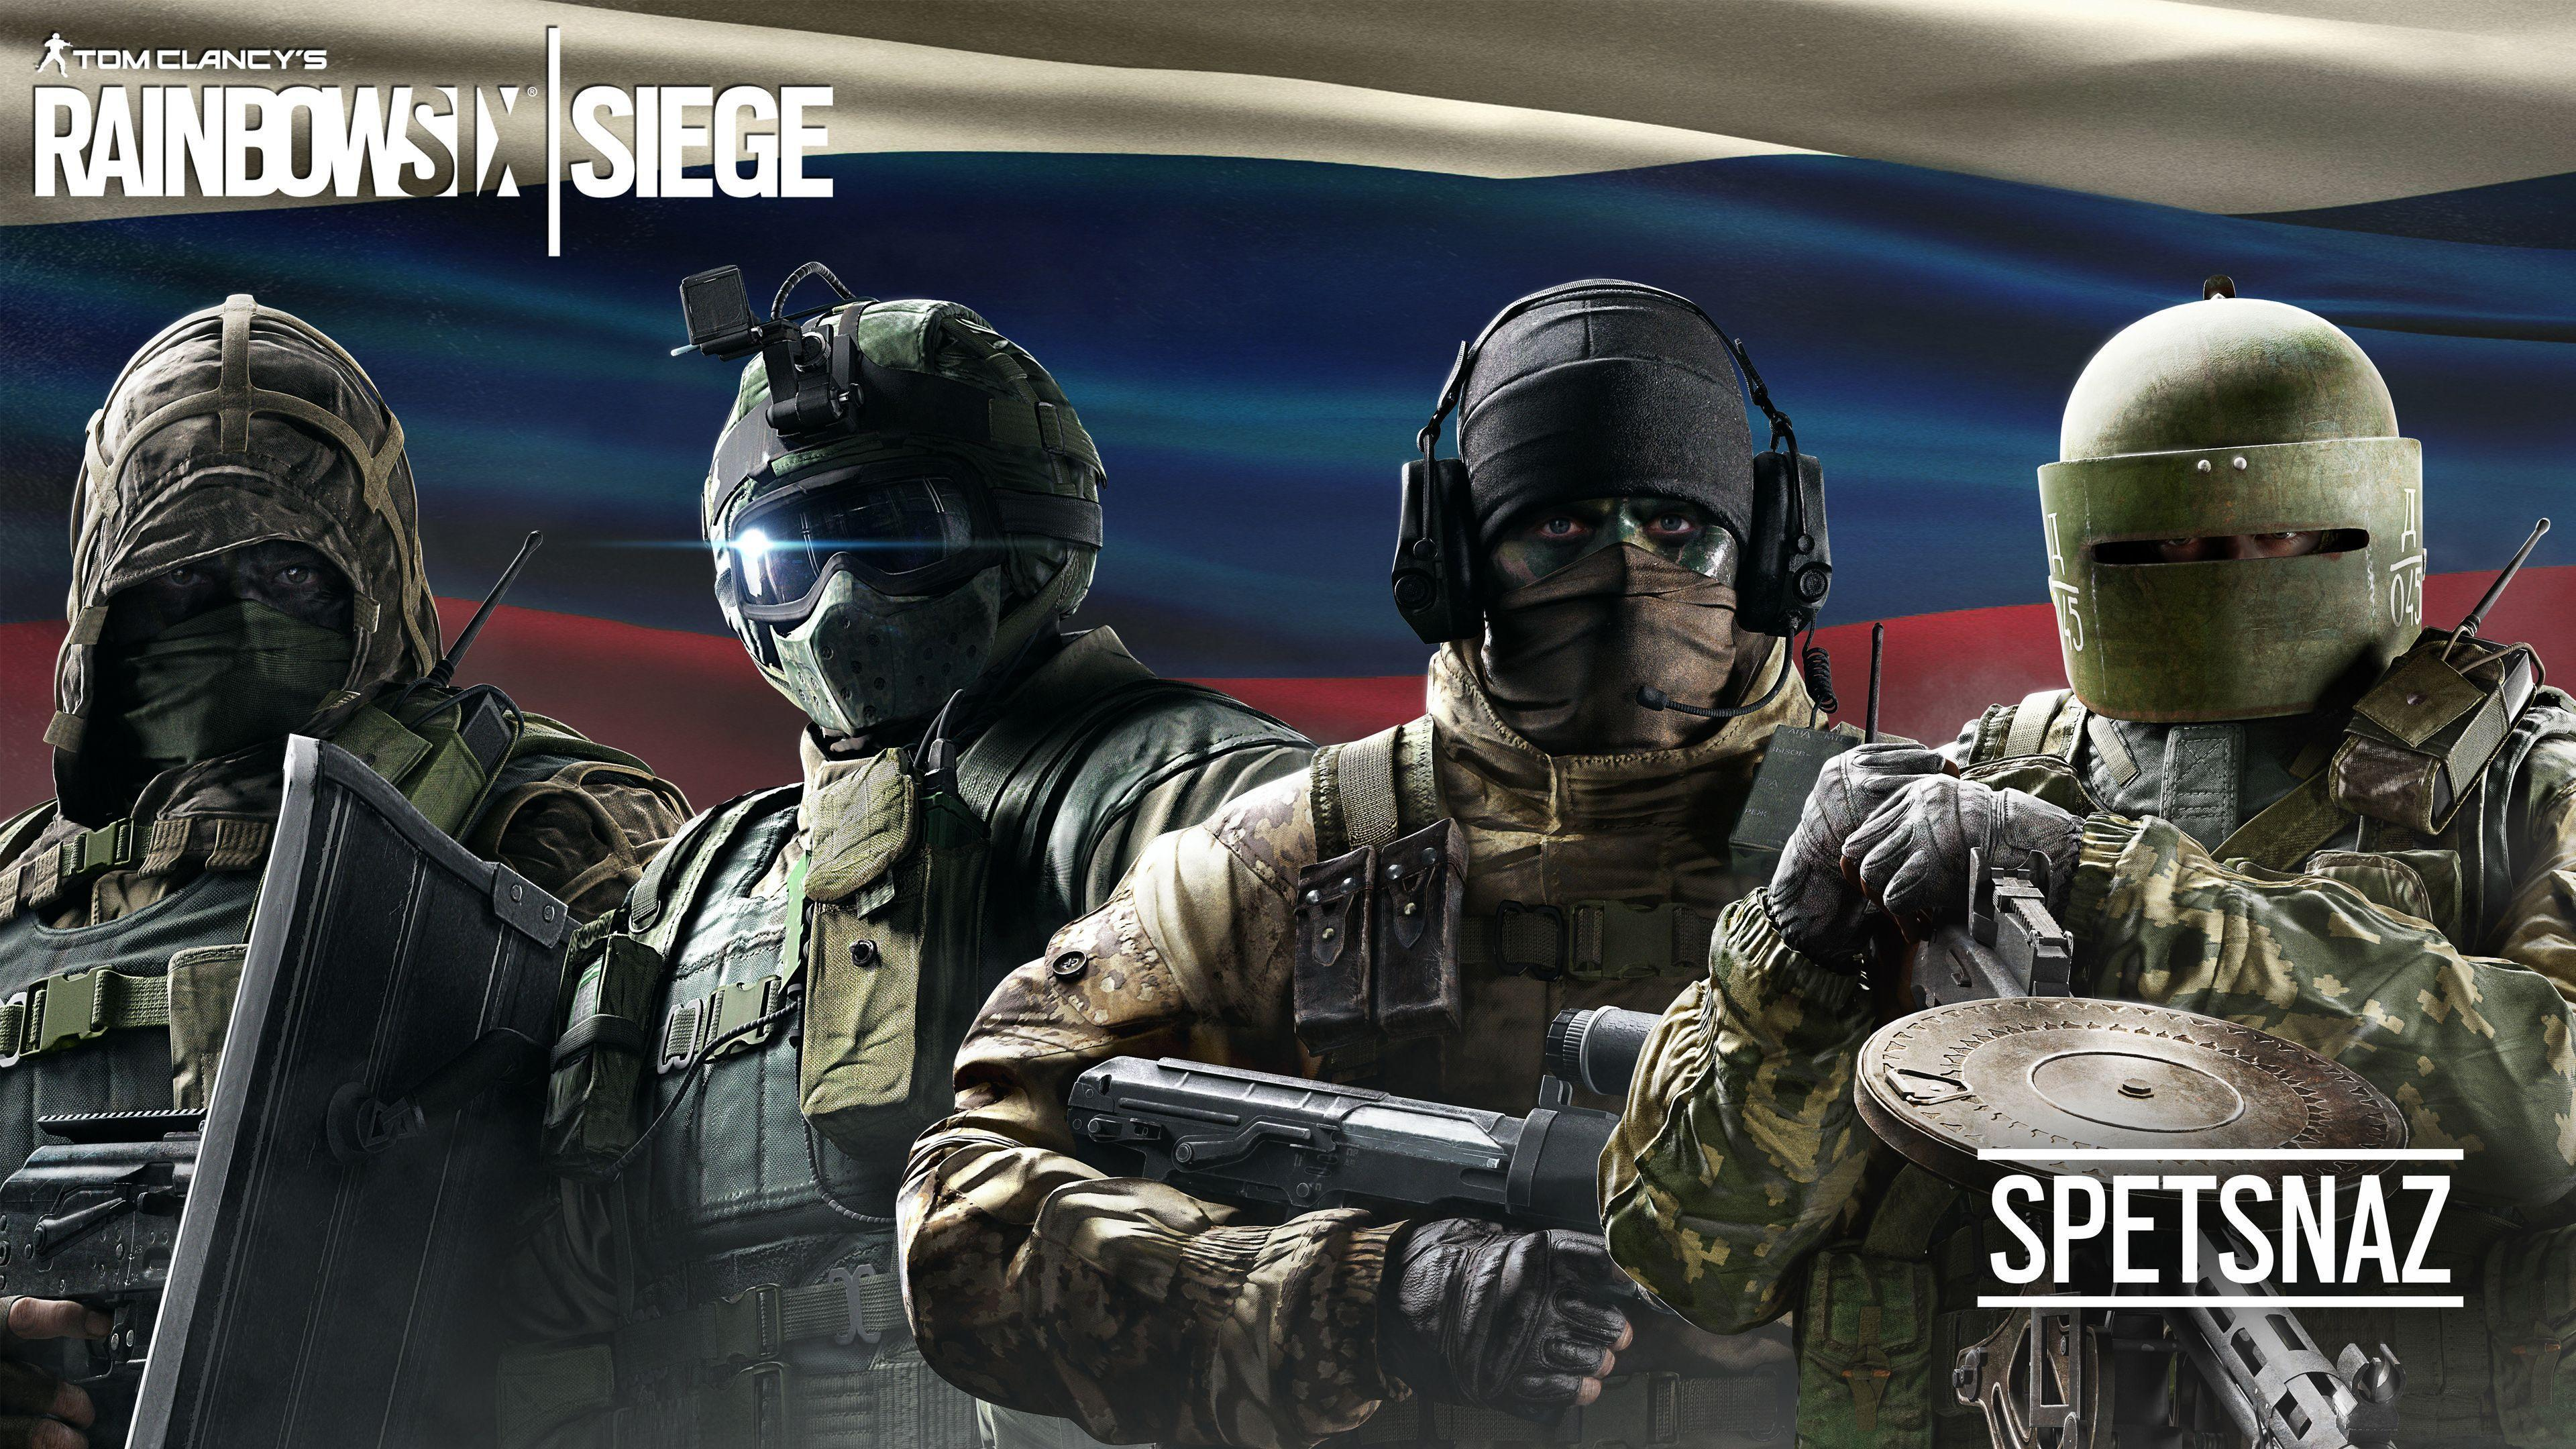 Tom Clancy's Rainbow Six Siege Spetsnaz Wallpapers | HD Wallpapers